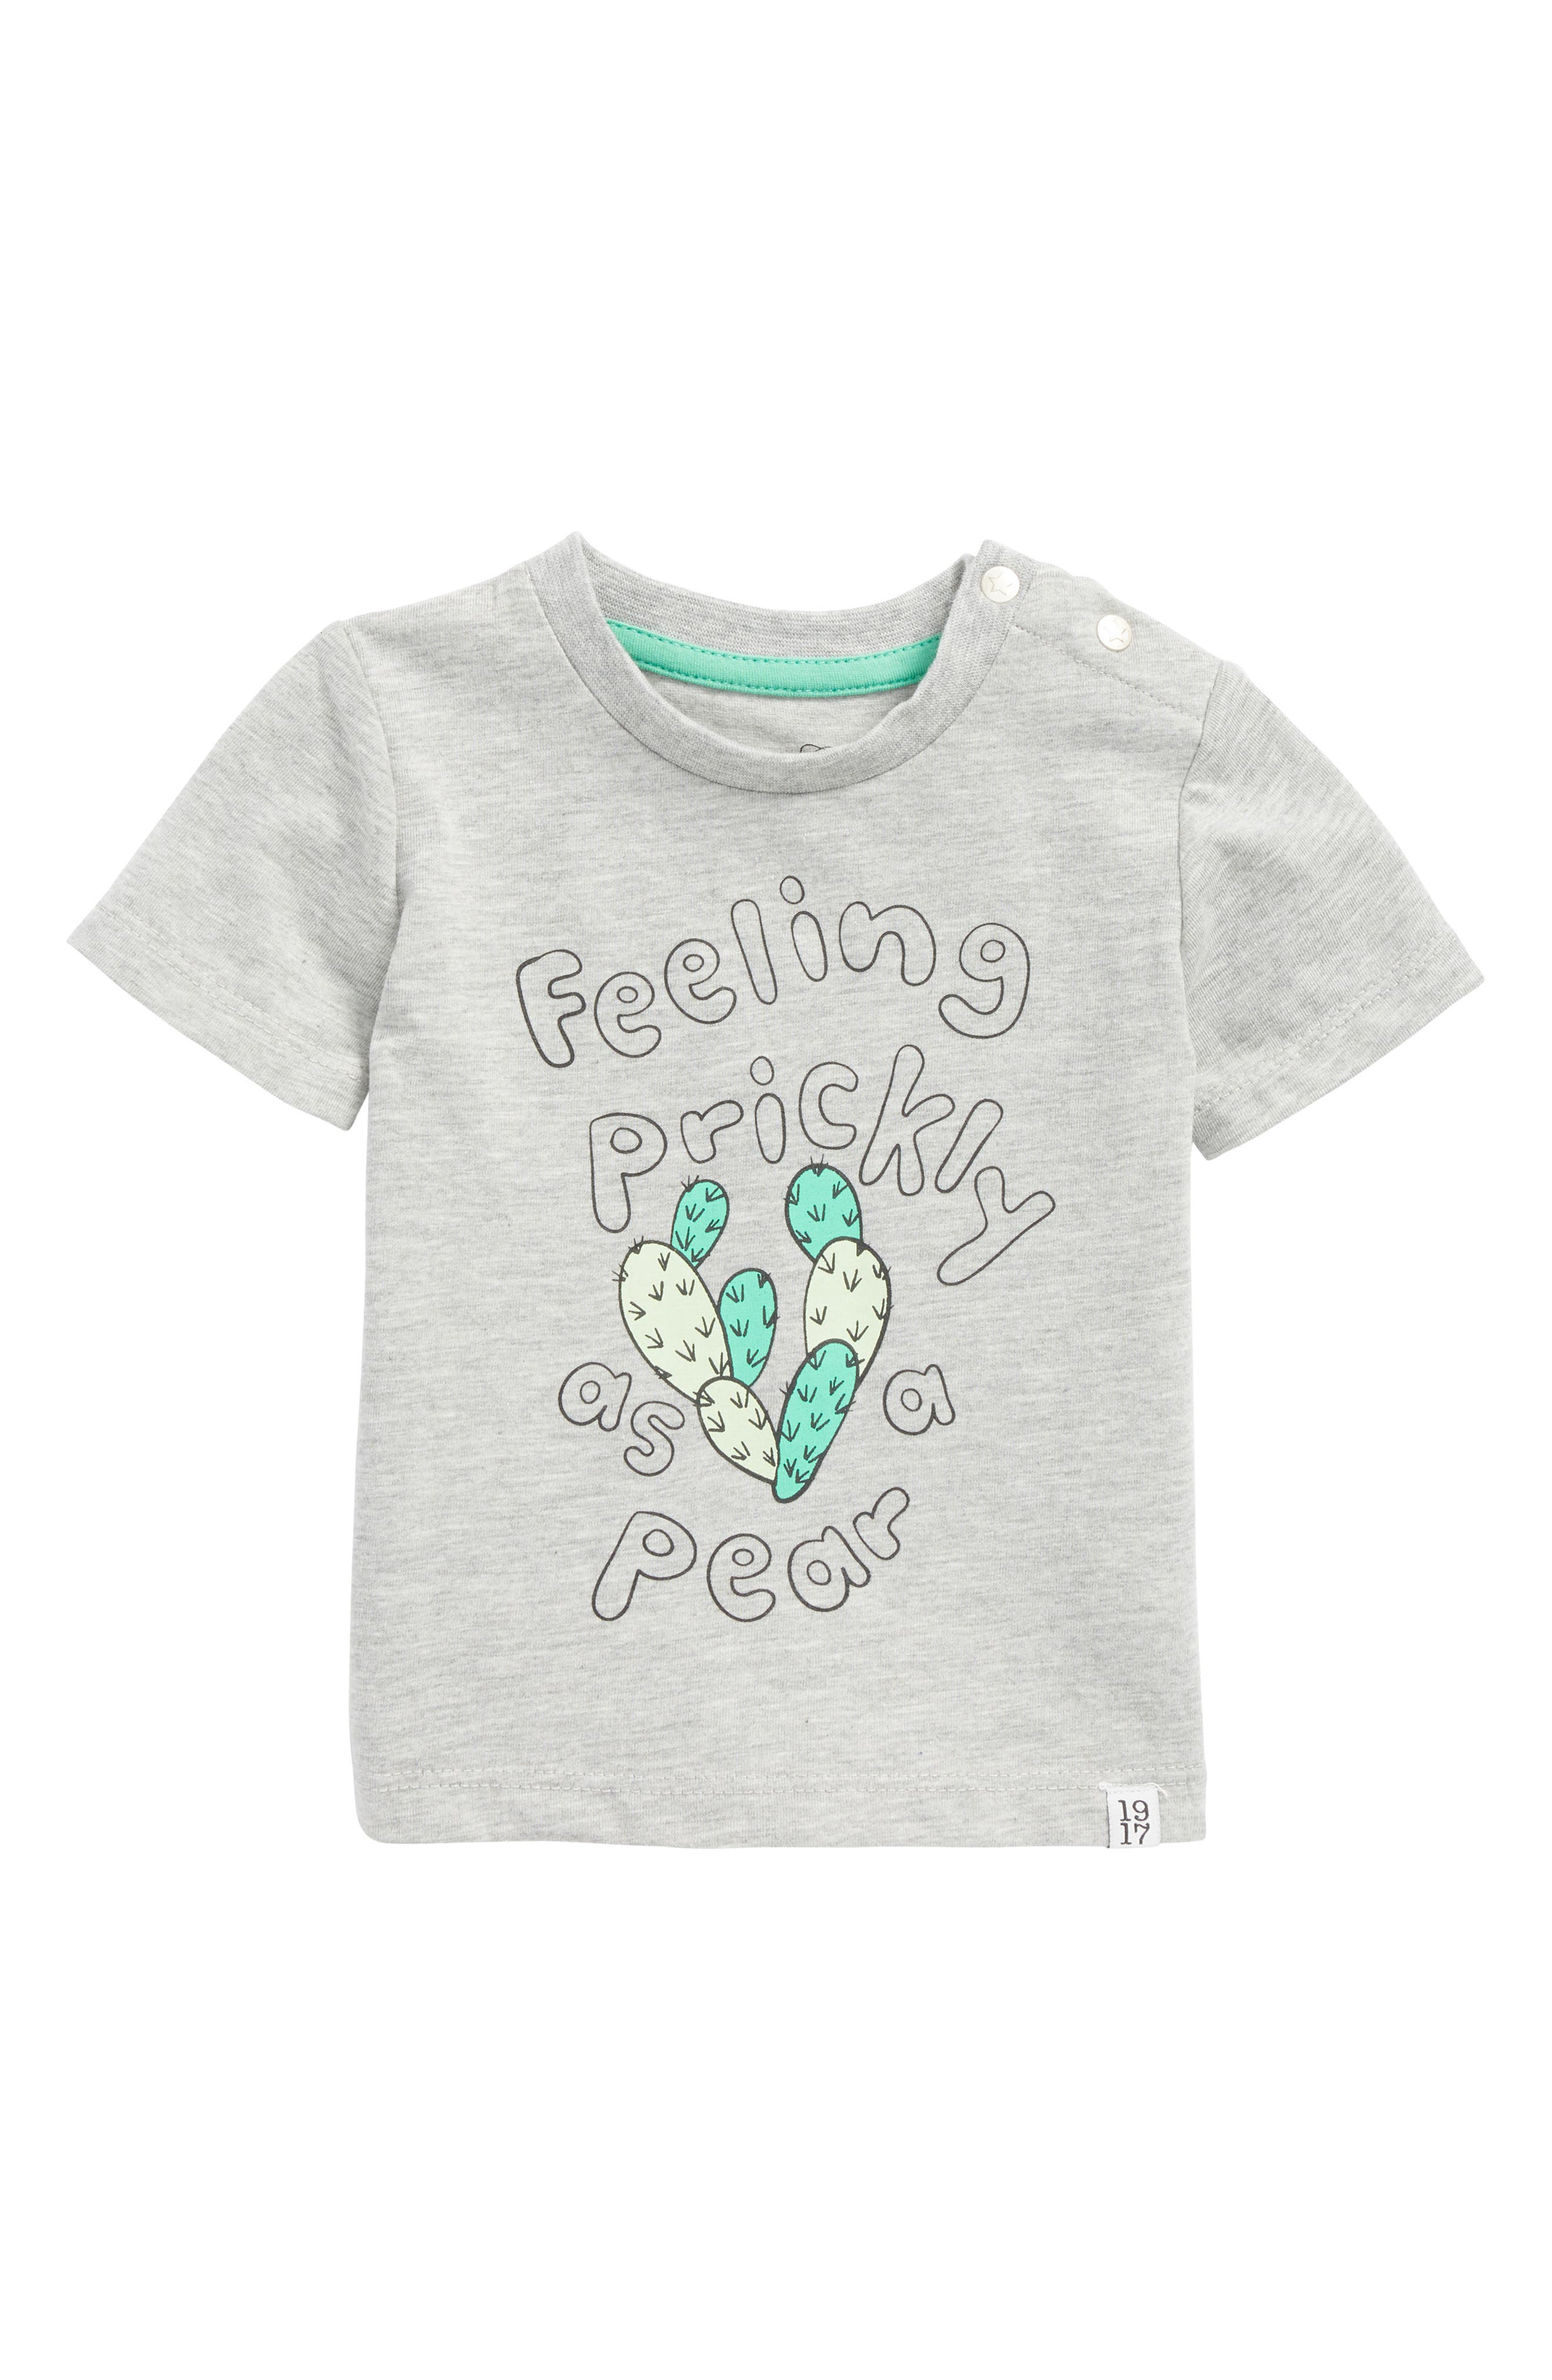 Feeling Prickly T-Shirt,                             Main thumbnail 1, color,